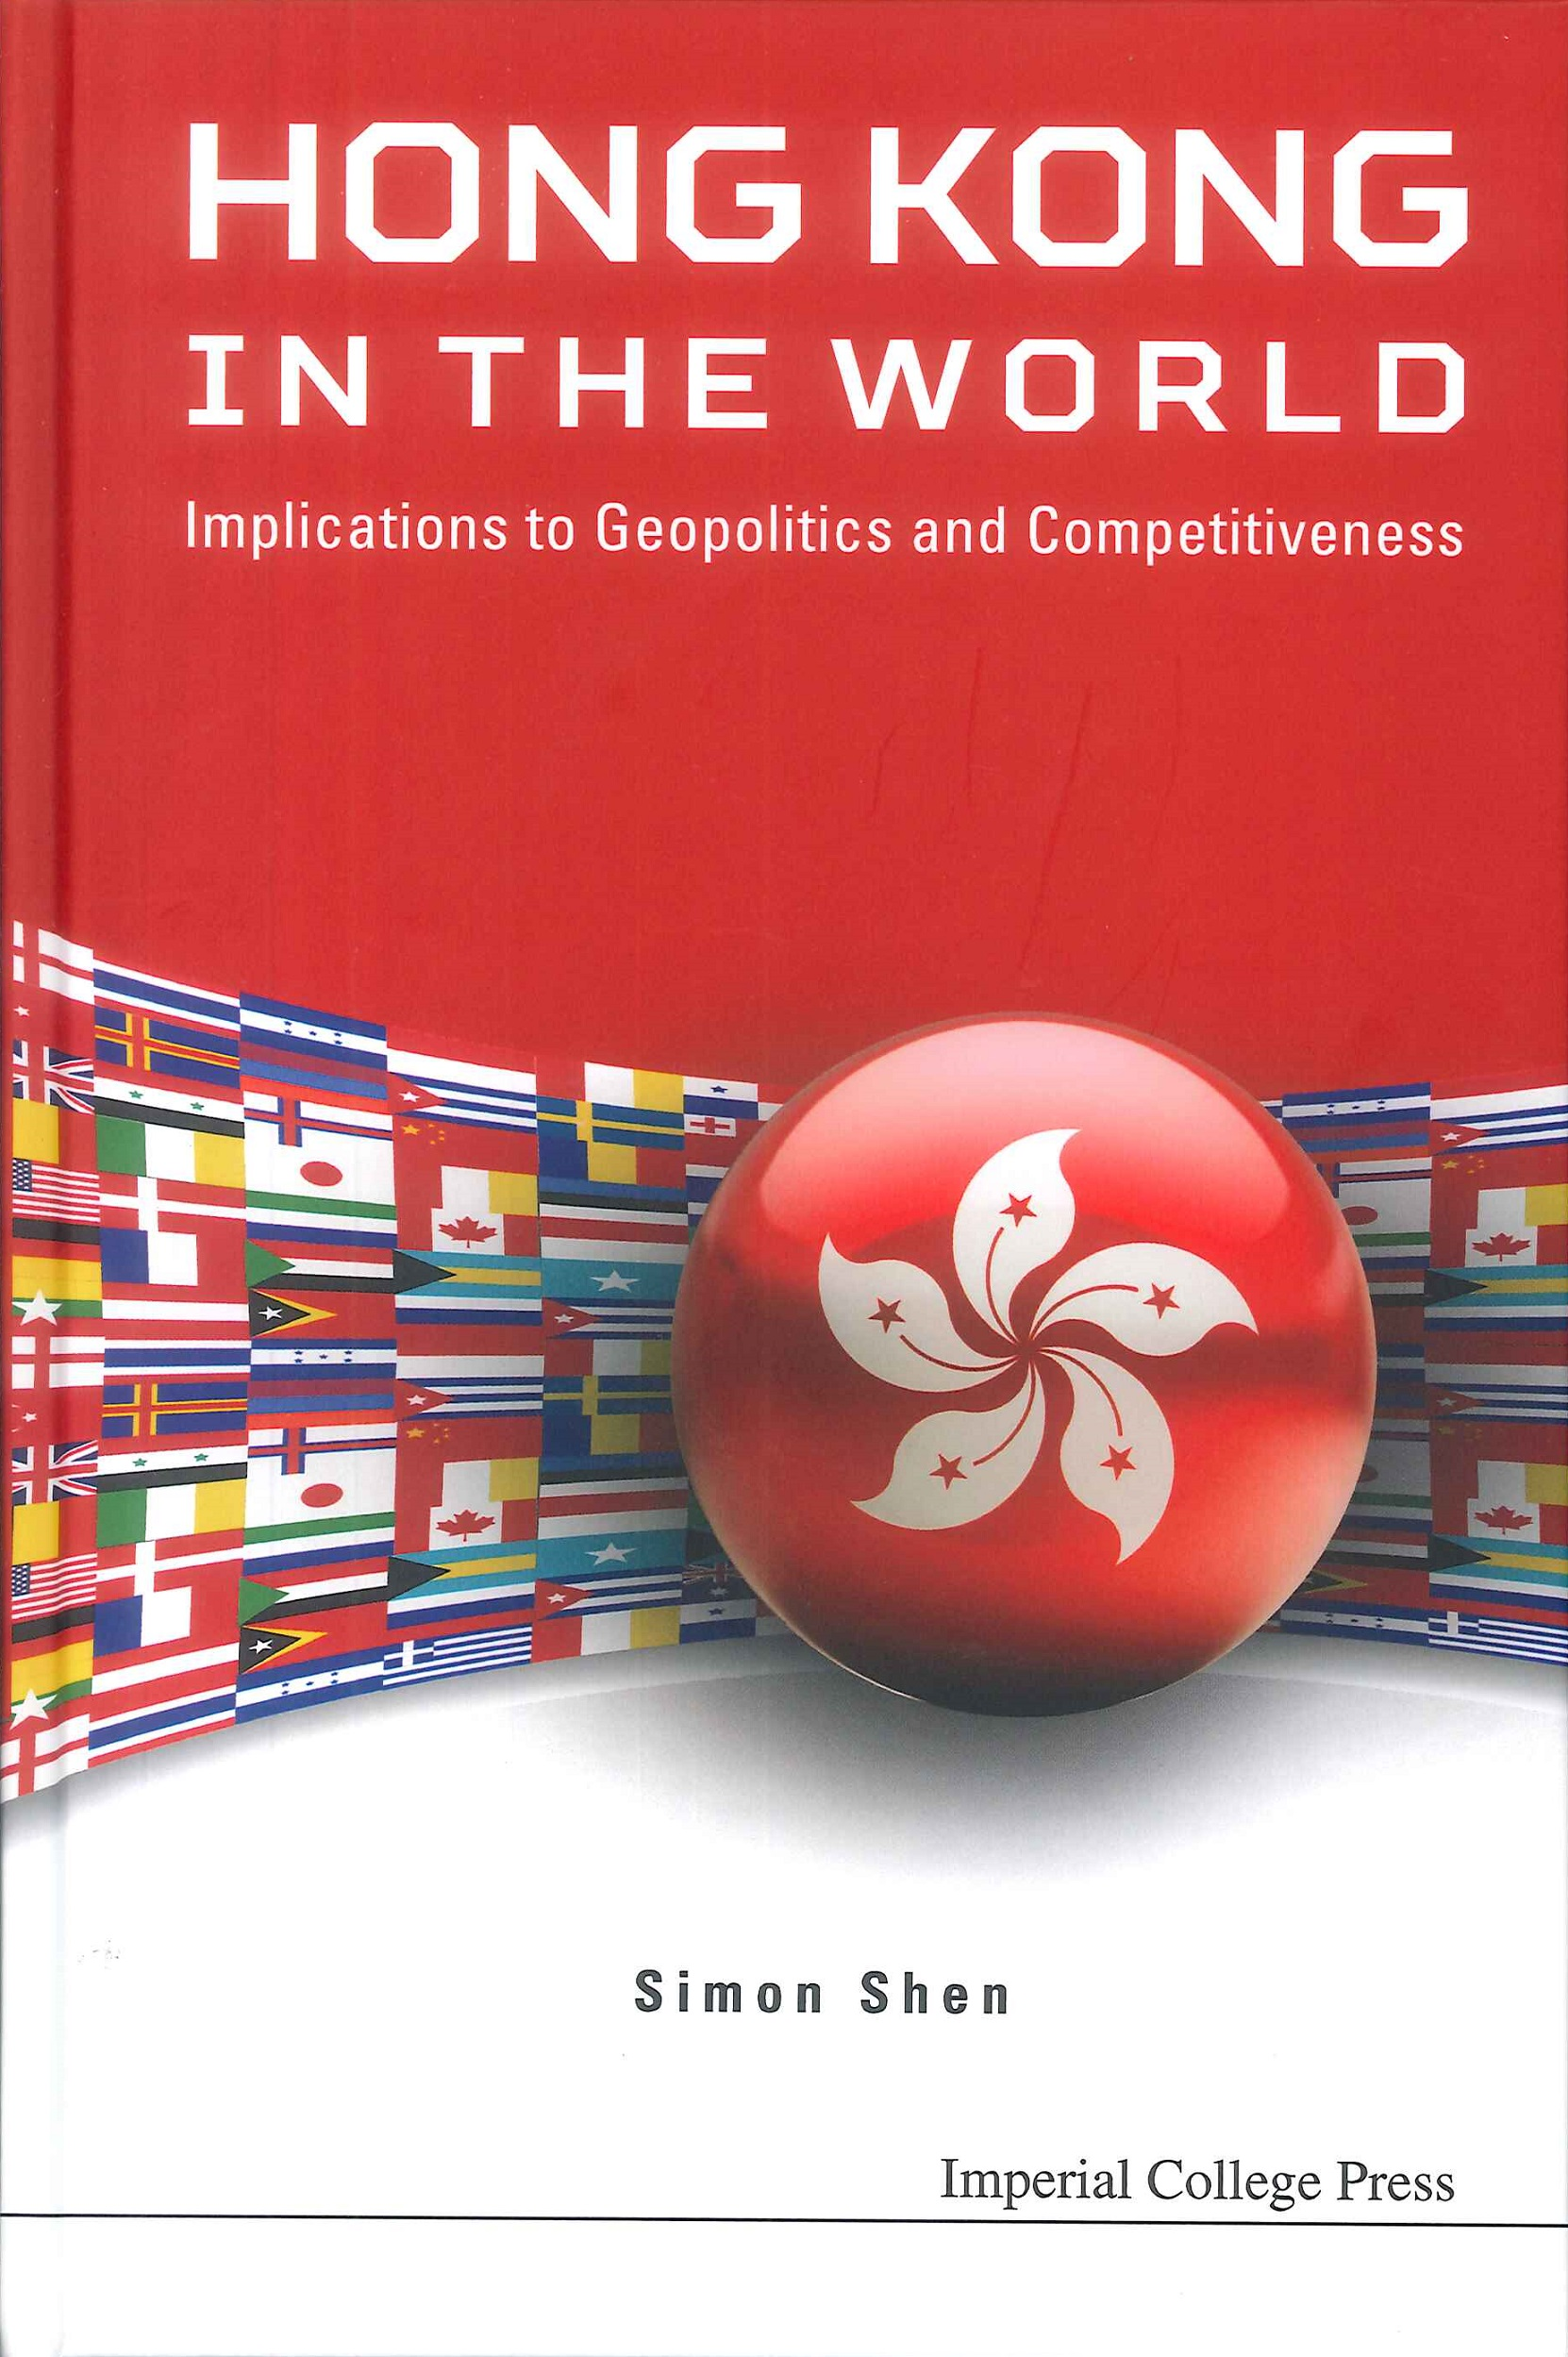 Hong Kong in the world:implications to geopolitics and competitiveness